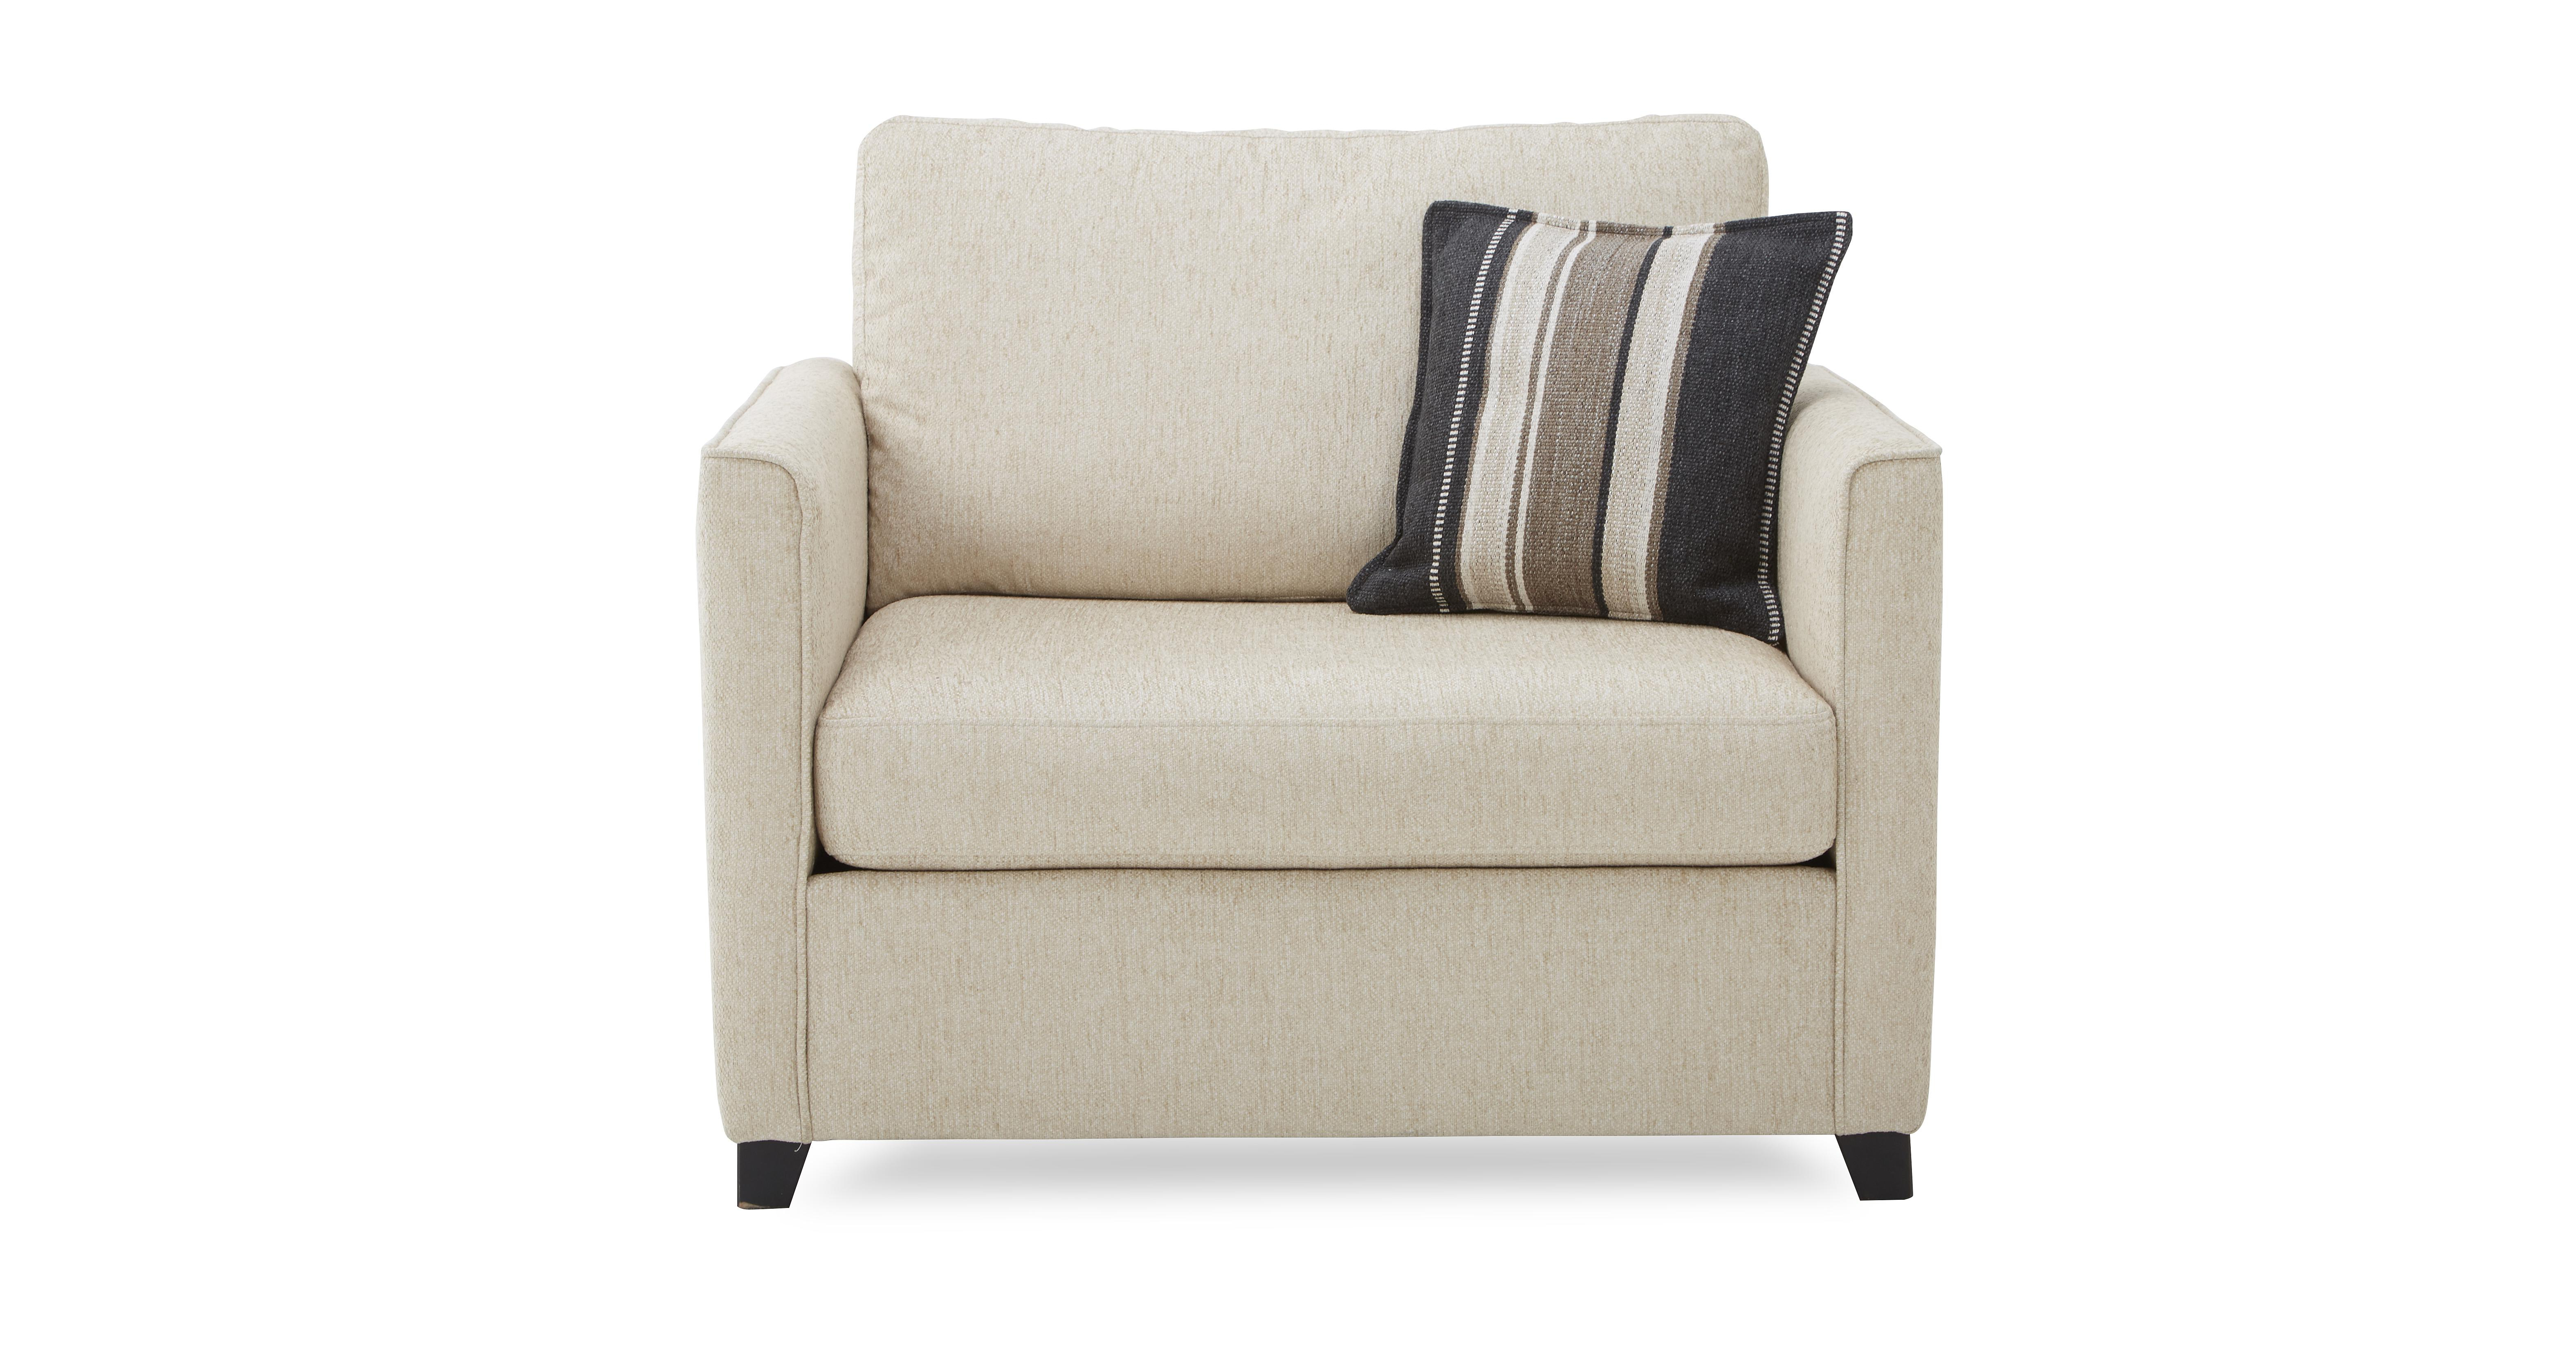 Most Recently Released Sofa Bed Chair And Its Benefits With Sofa Chairs (View 11 of 20)